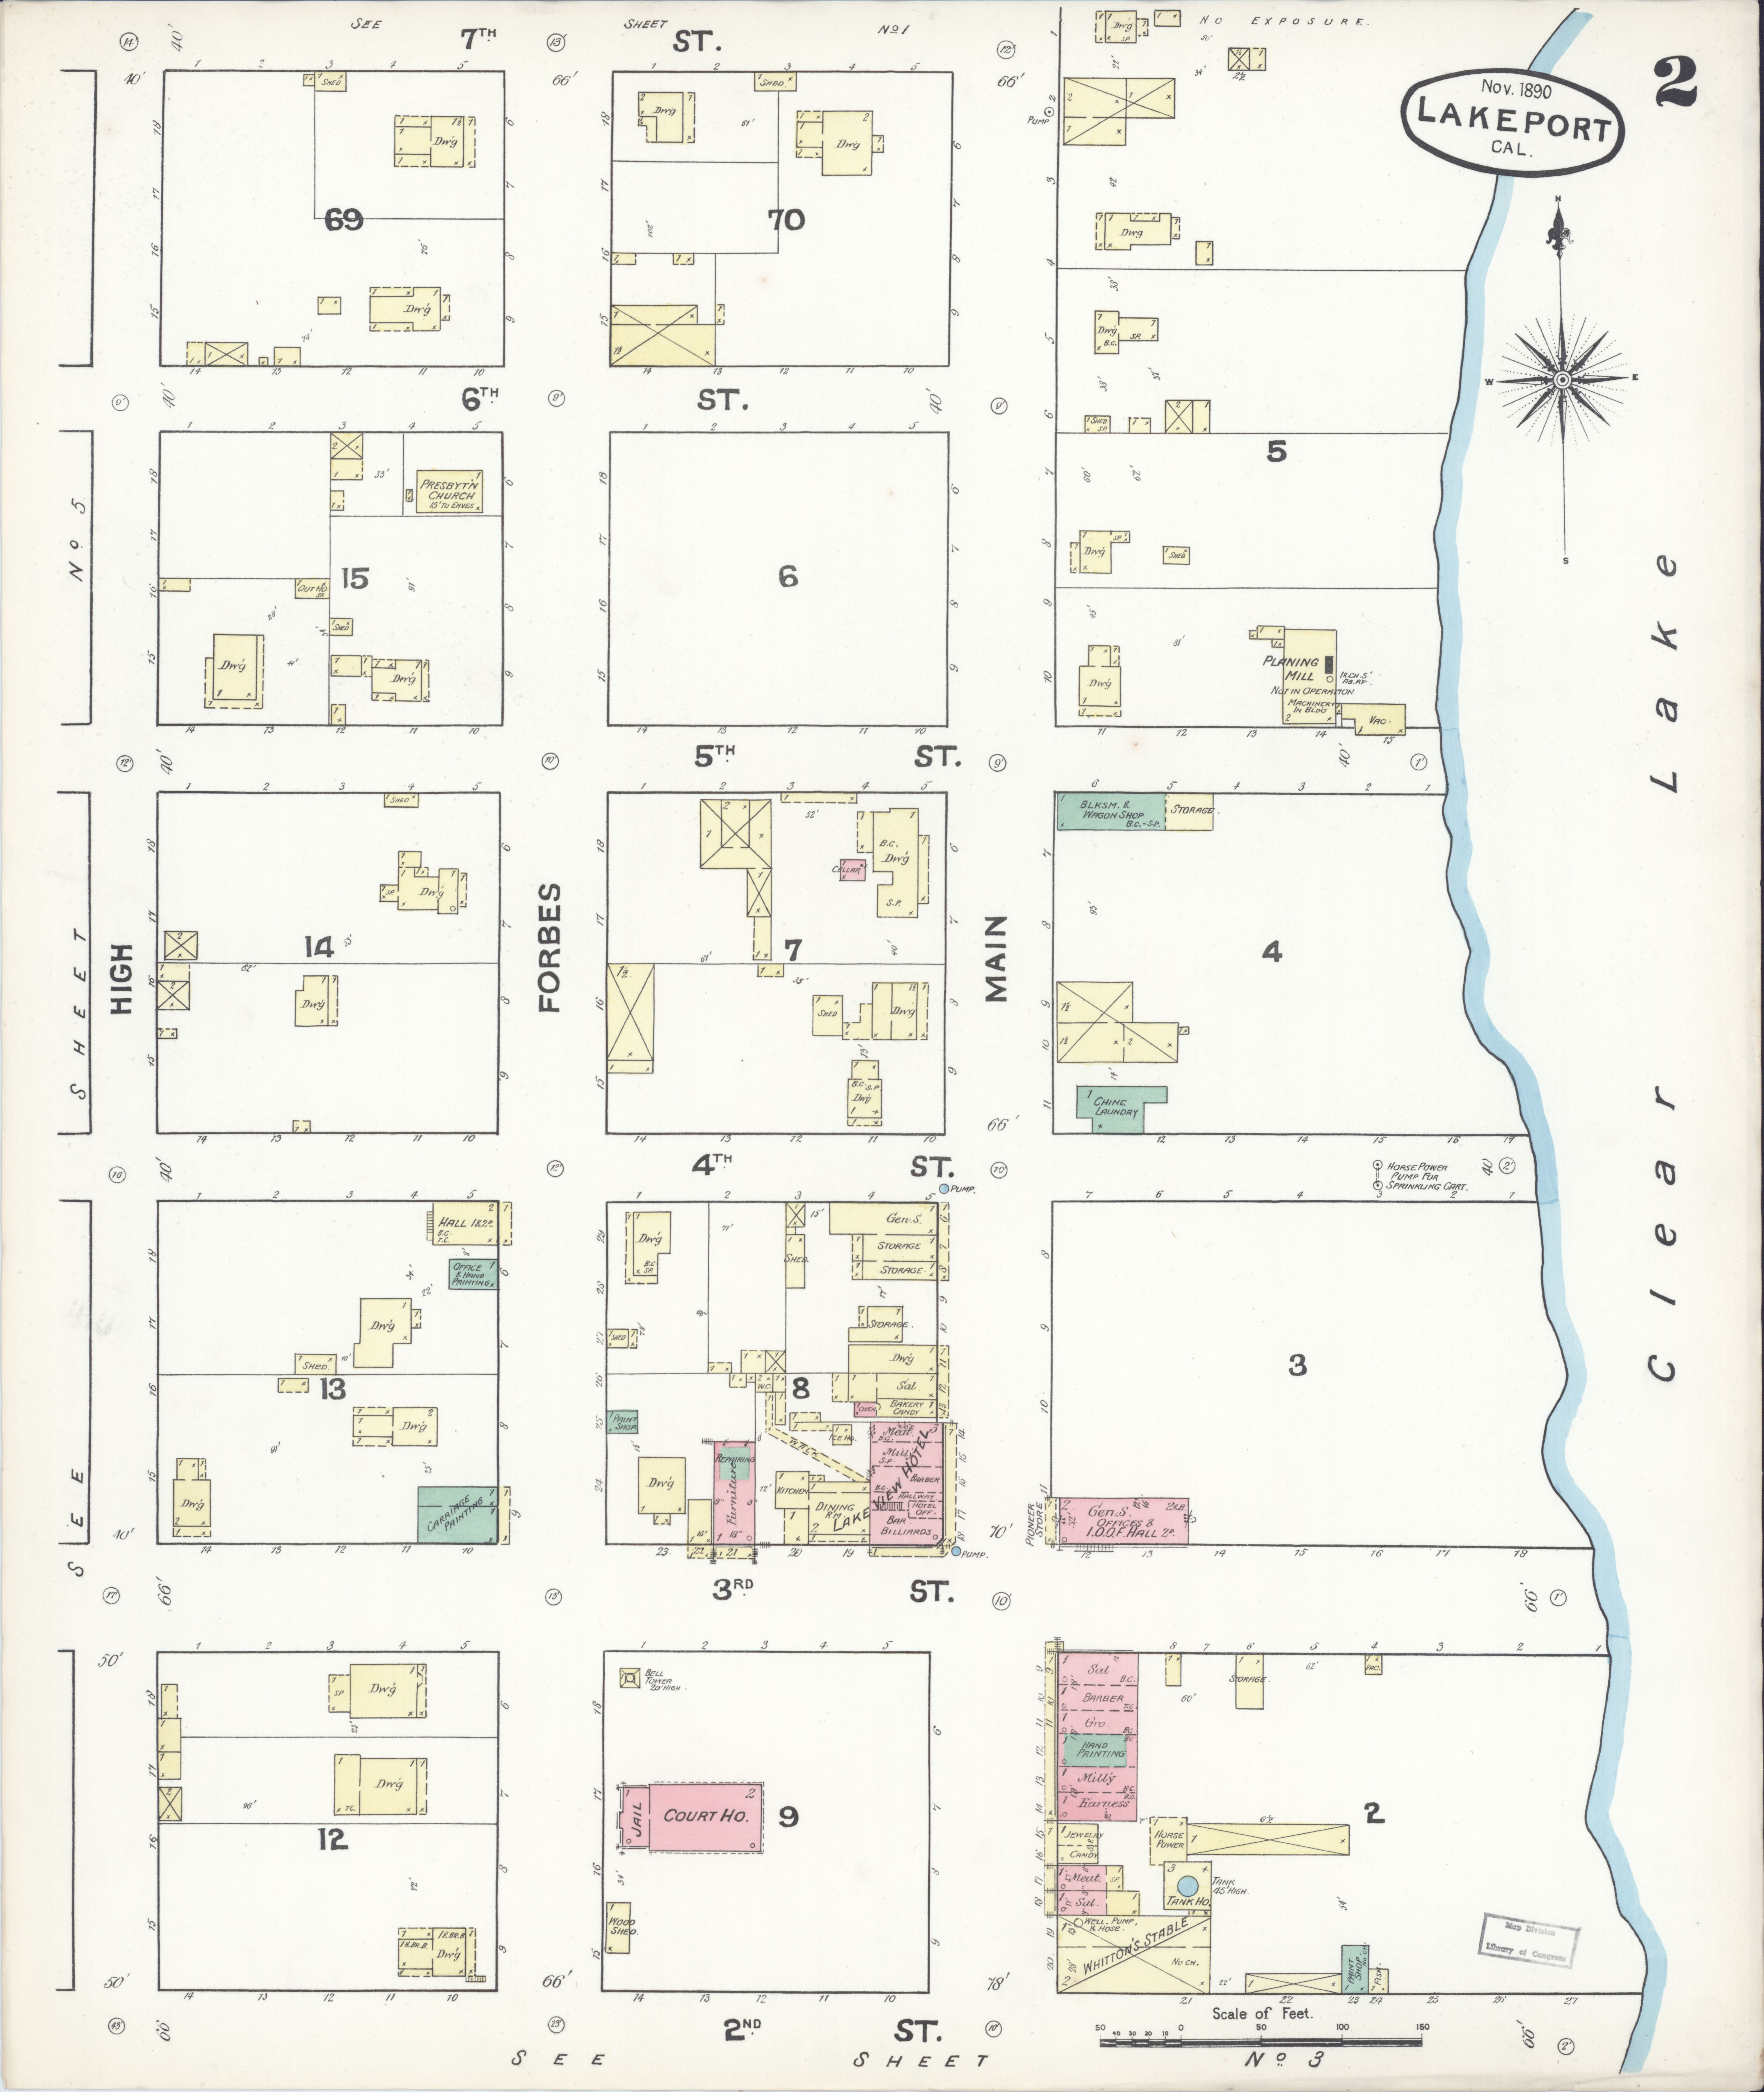 File Sanborn Fire Insurance Map from Lakeport  Lake County moreover Geologic map of the Lake Mathews 7 5' quadrangle  Riverside County likewise First People   South Lake County  California  History together with  likewise Lake County Wine Country Map   California Winery Advisor further Lake county ca map and travel information   Download free Lake in addition Lake County  California  United States Of America  Vector Map further WT7 – Rodman Slough   KRT Pathways  Land and Water Trails moreover File Sanborn Fire Insurance Map from Lakeport  Lake County in addition Lake County  CA Zip Code Wall Map Red Line Style by MarketMAPS likewise Lake County  California   Map Of Lake County together with Lake County California Political Map 2016 – weggelopen info likewise Lake County Appellations   Lake County Wineg  mission also  together with  in addition CAL FIRE   Lake County FHSZ Map. on map lake county ca